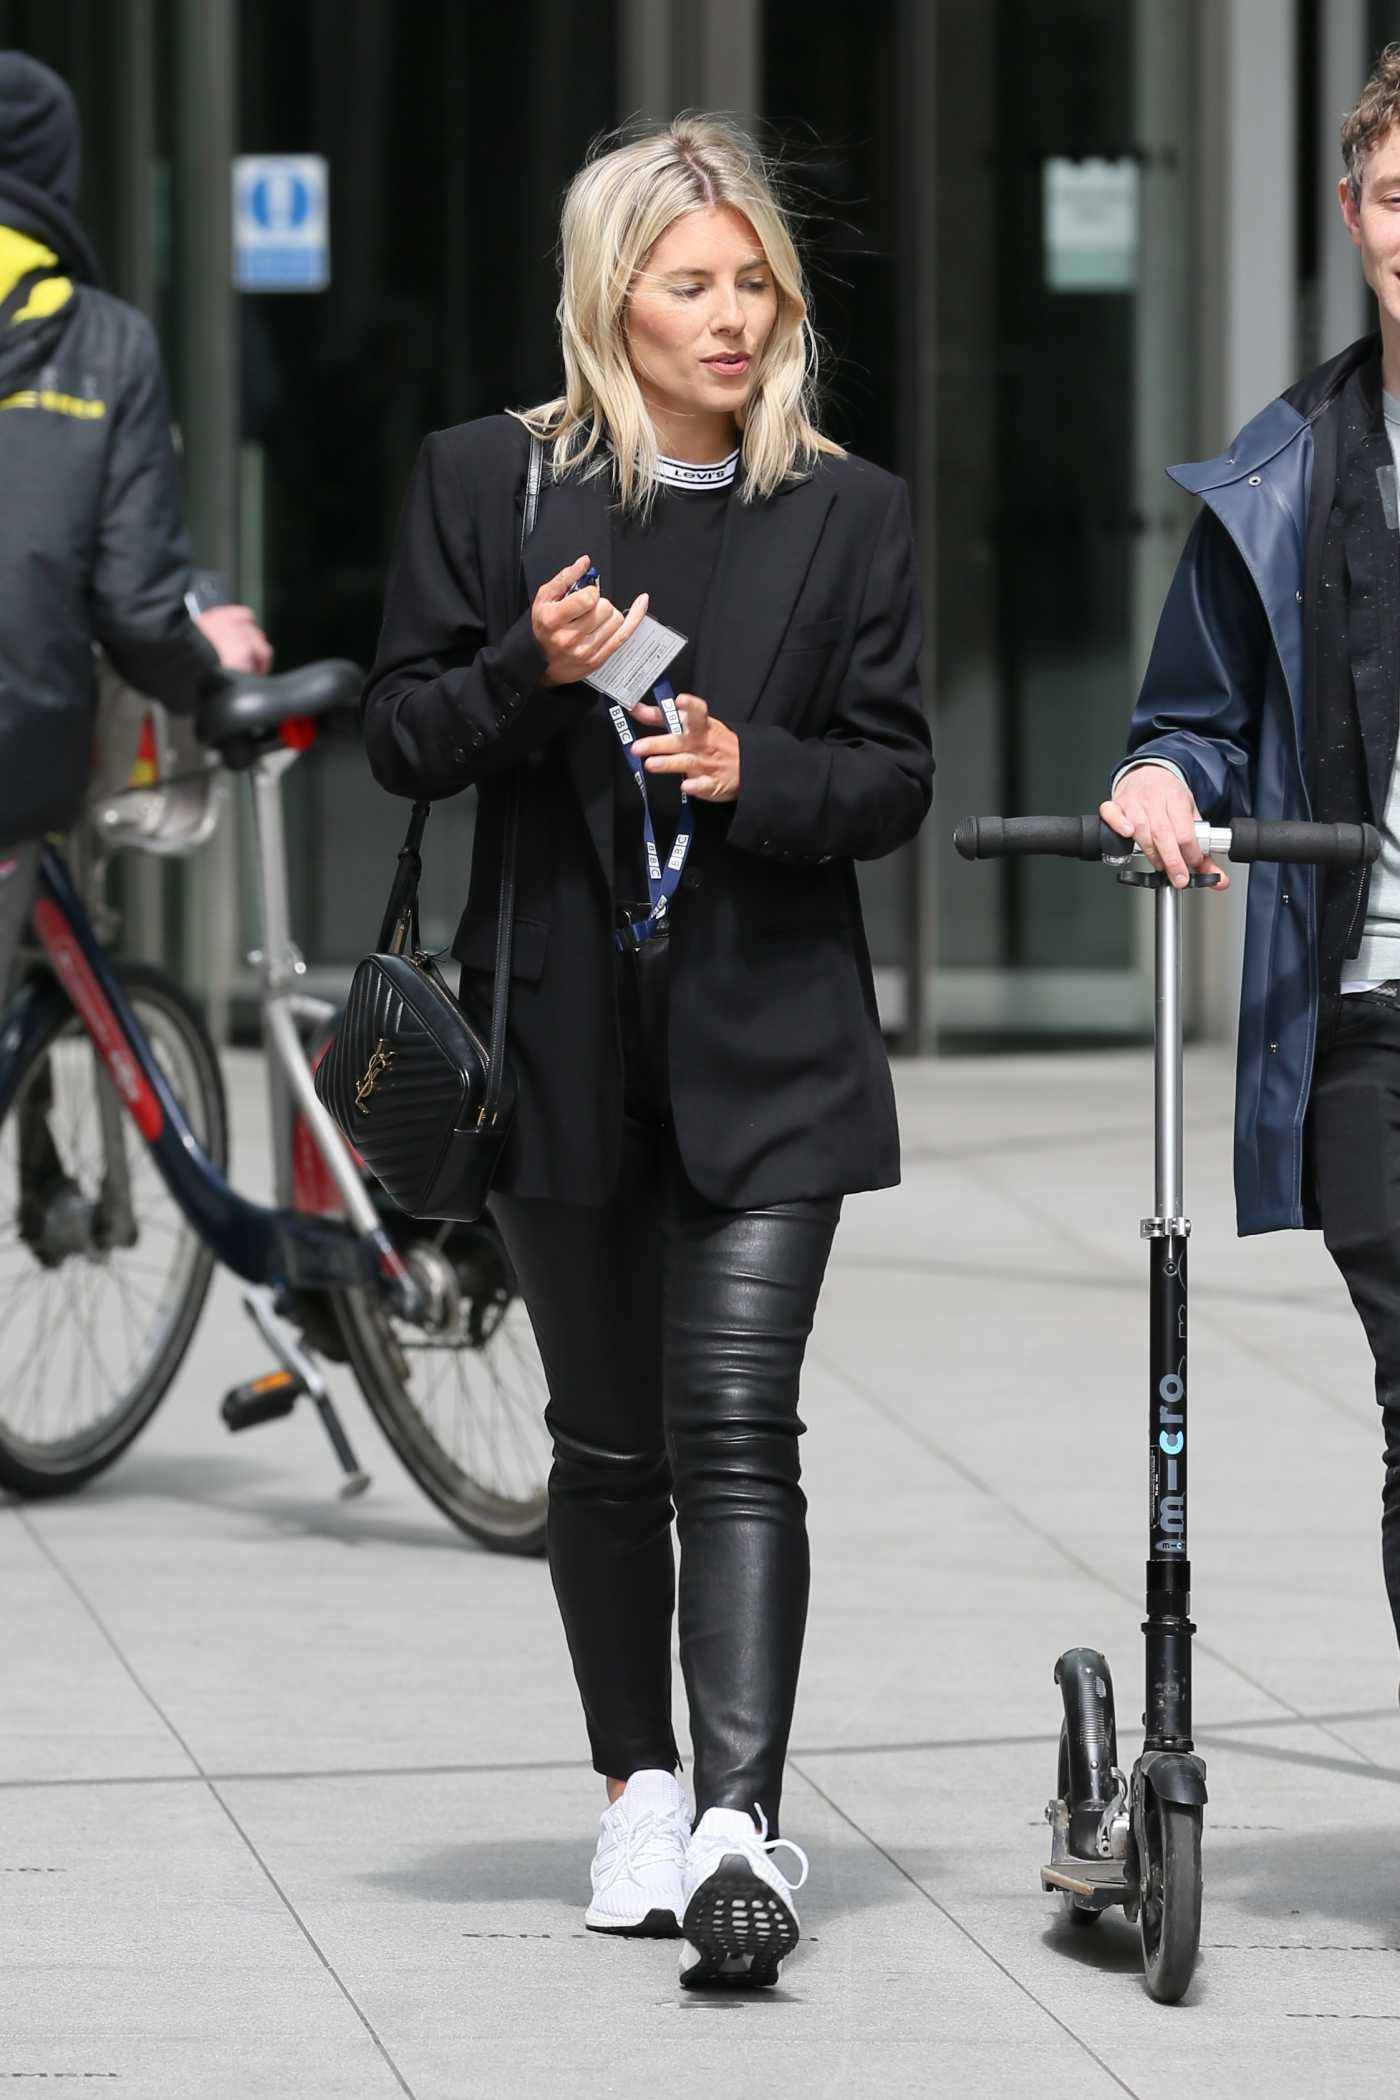 Mollie King in a Black Blazer Arrives at BBC Radio 1 Studios in London 04/24/2019